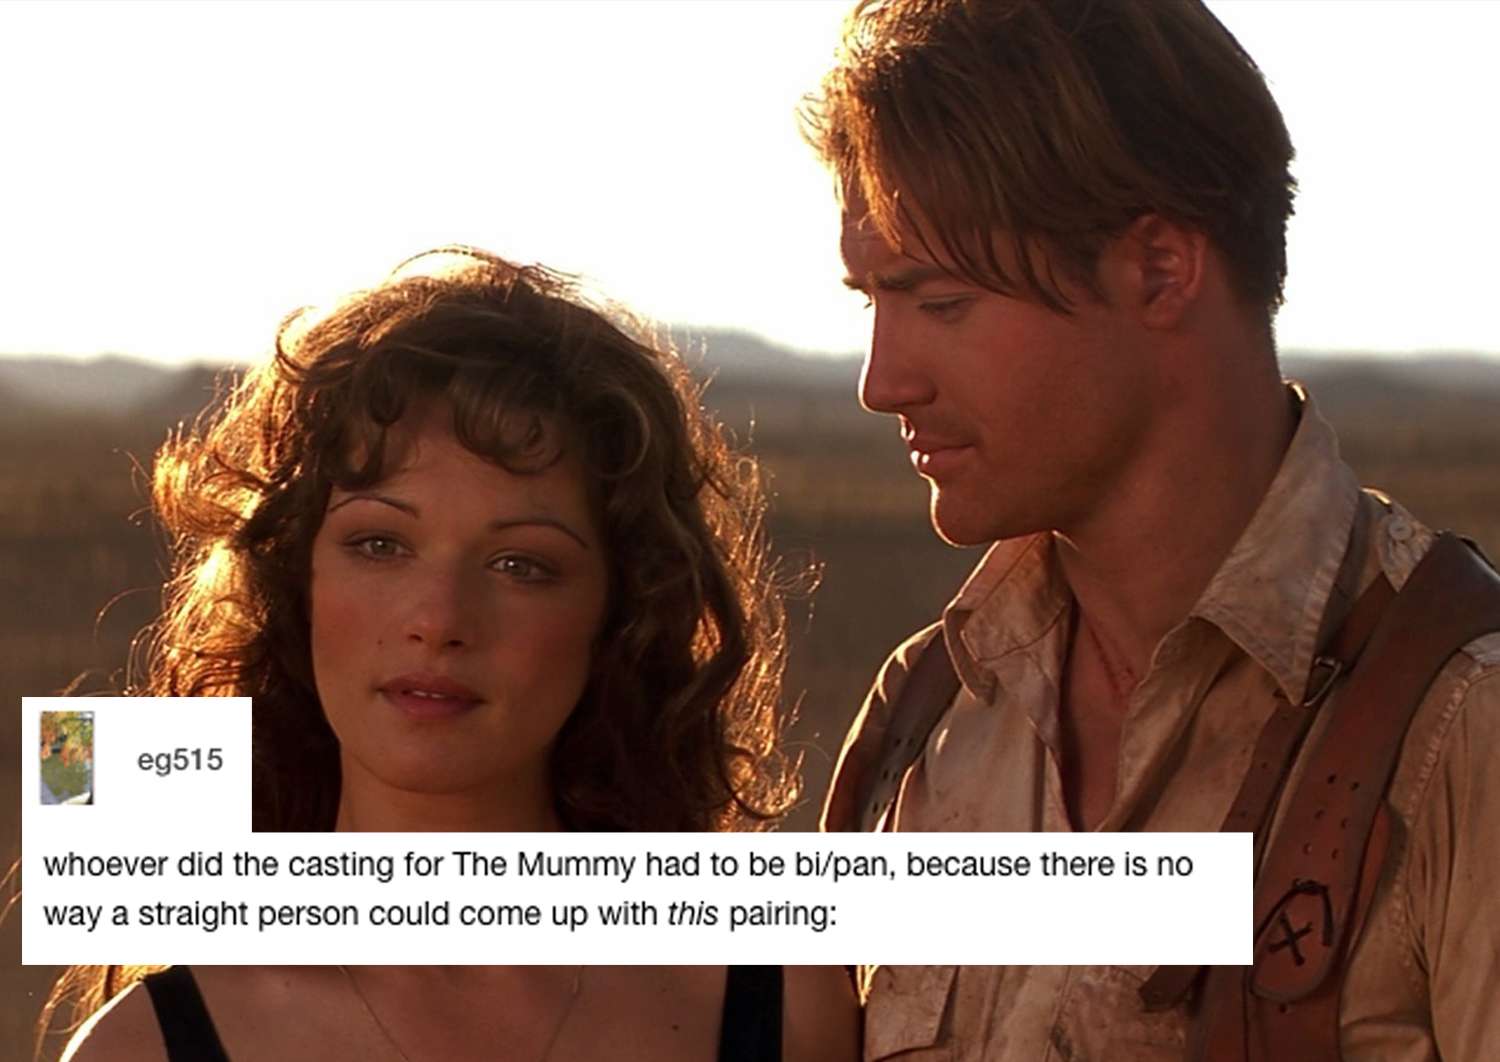 19 Jokes About The Mummy You Ll Enjoy Because It S A Perfect Movie And You Have Good Taste Additionally, it's bashful, a crybaby, & most of all, heckin' cute. 19 jokes about the mummy you ll enjoy